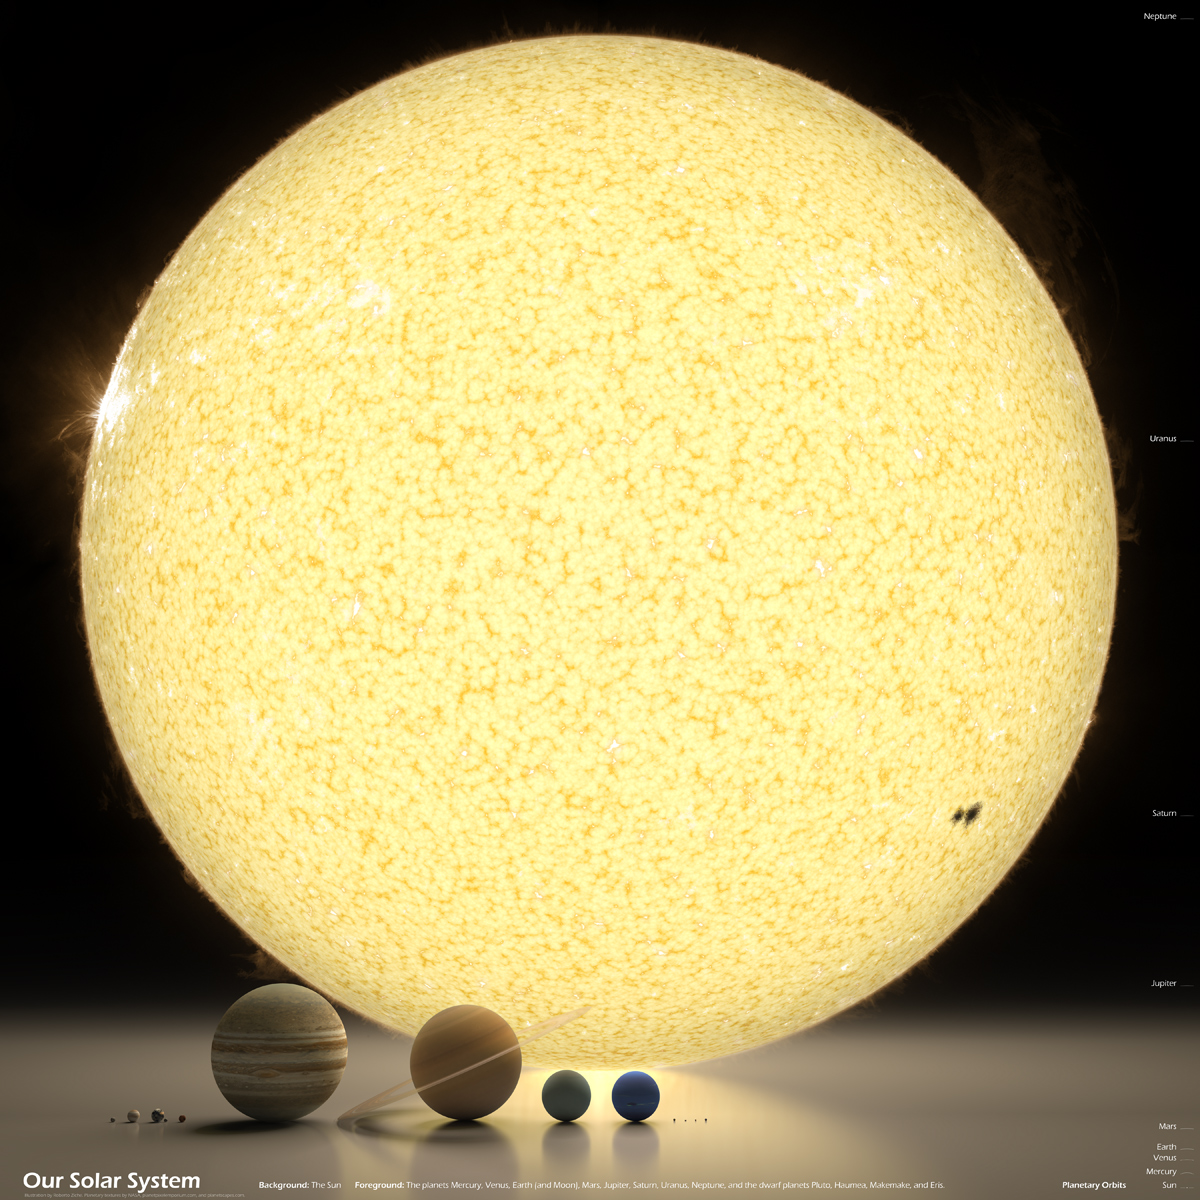 our solar system in perspective Putting Our Solar System Into Perspective